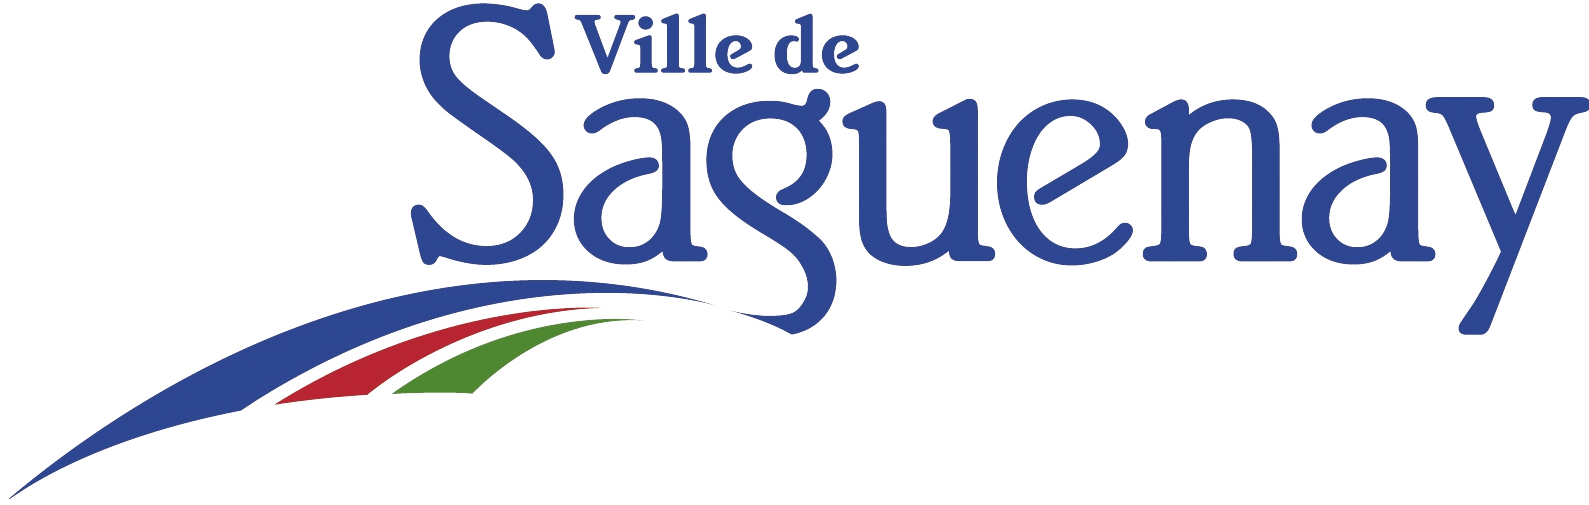 [Logo of the ville of Saguenay]